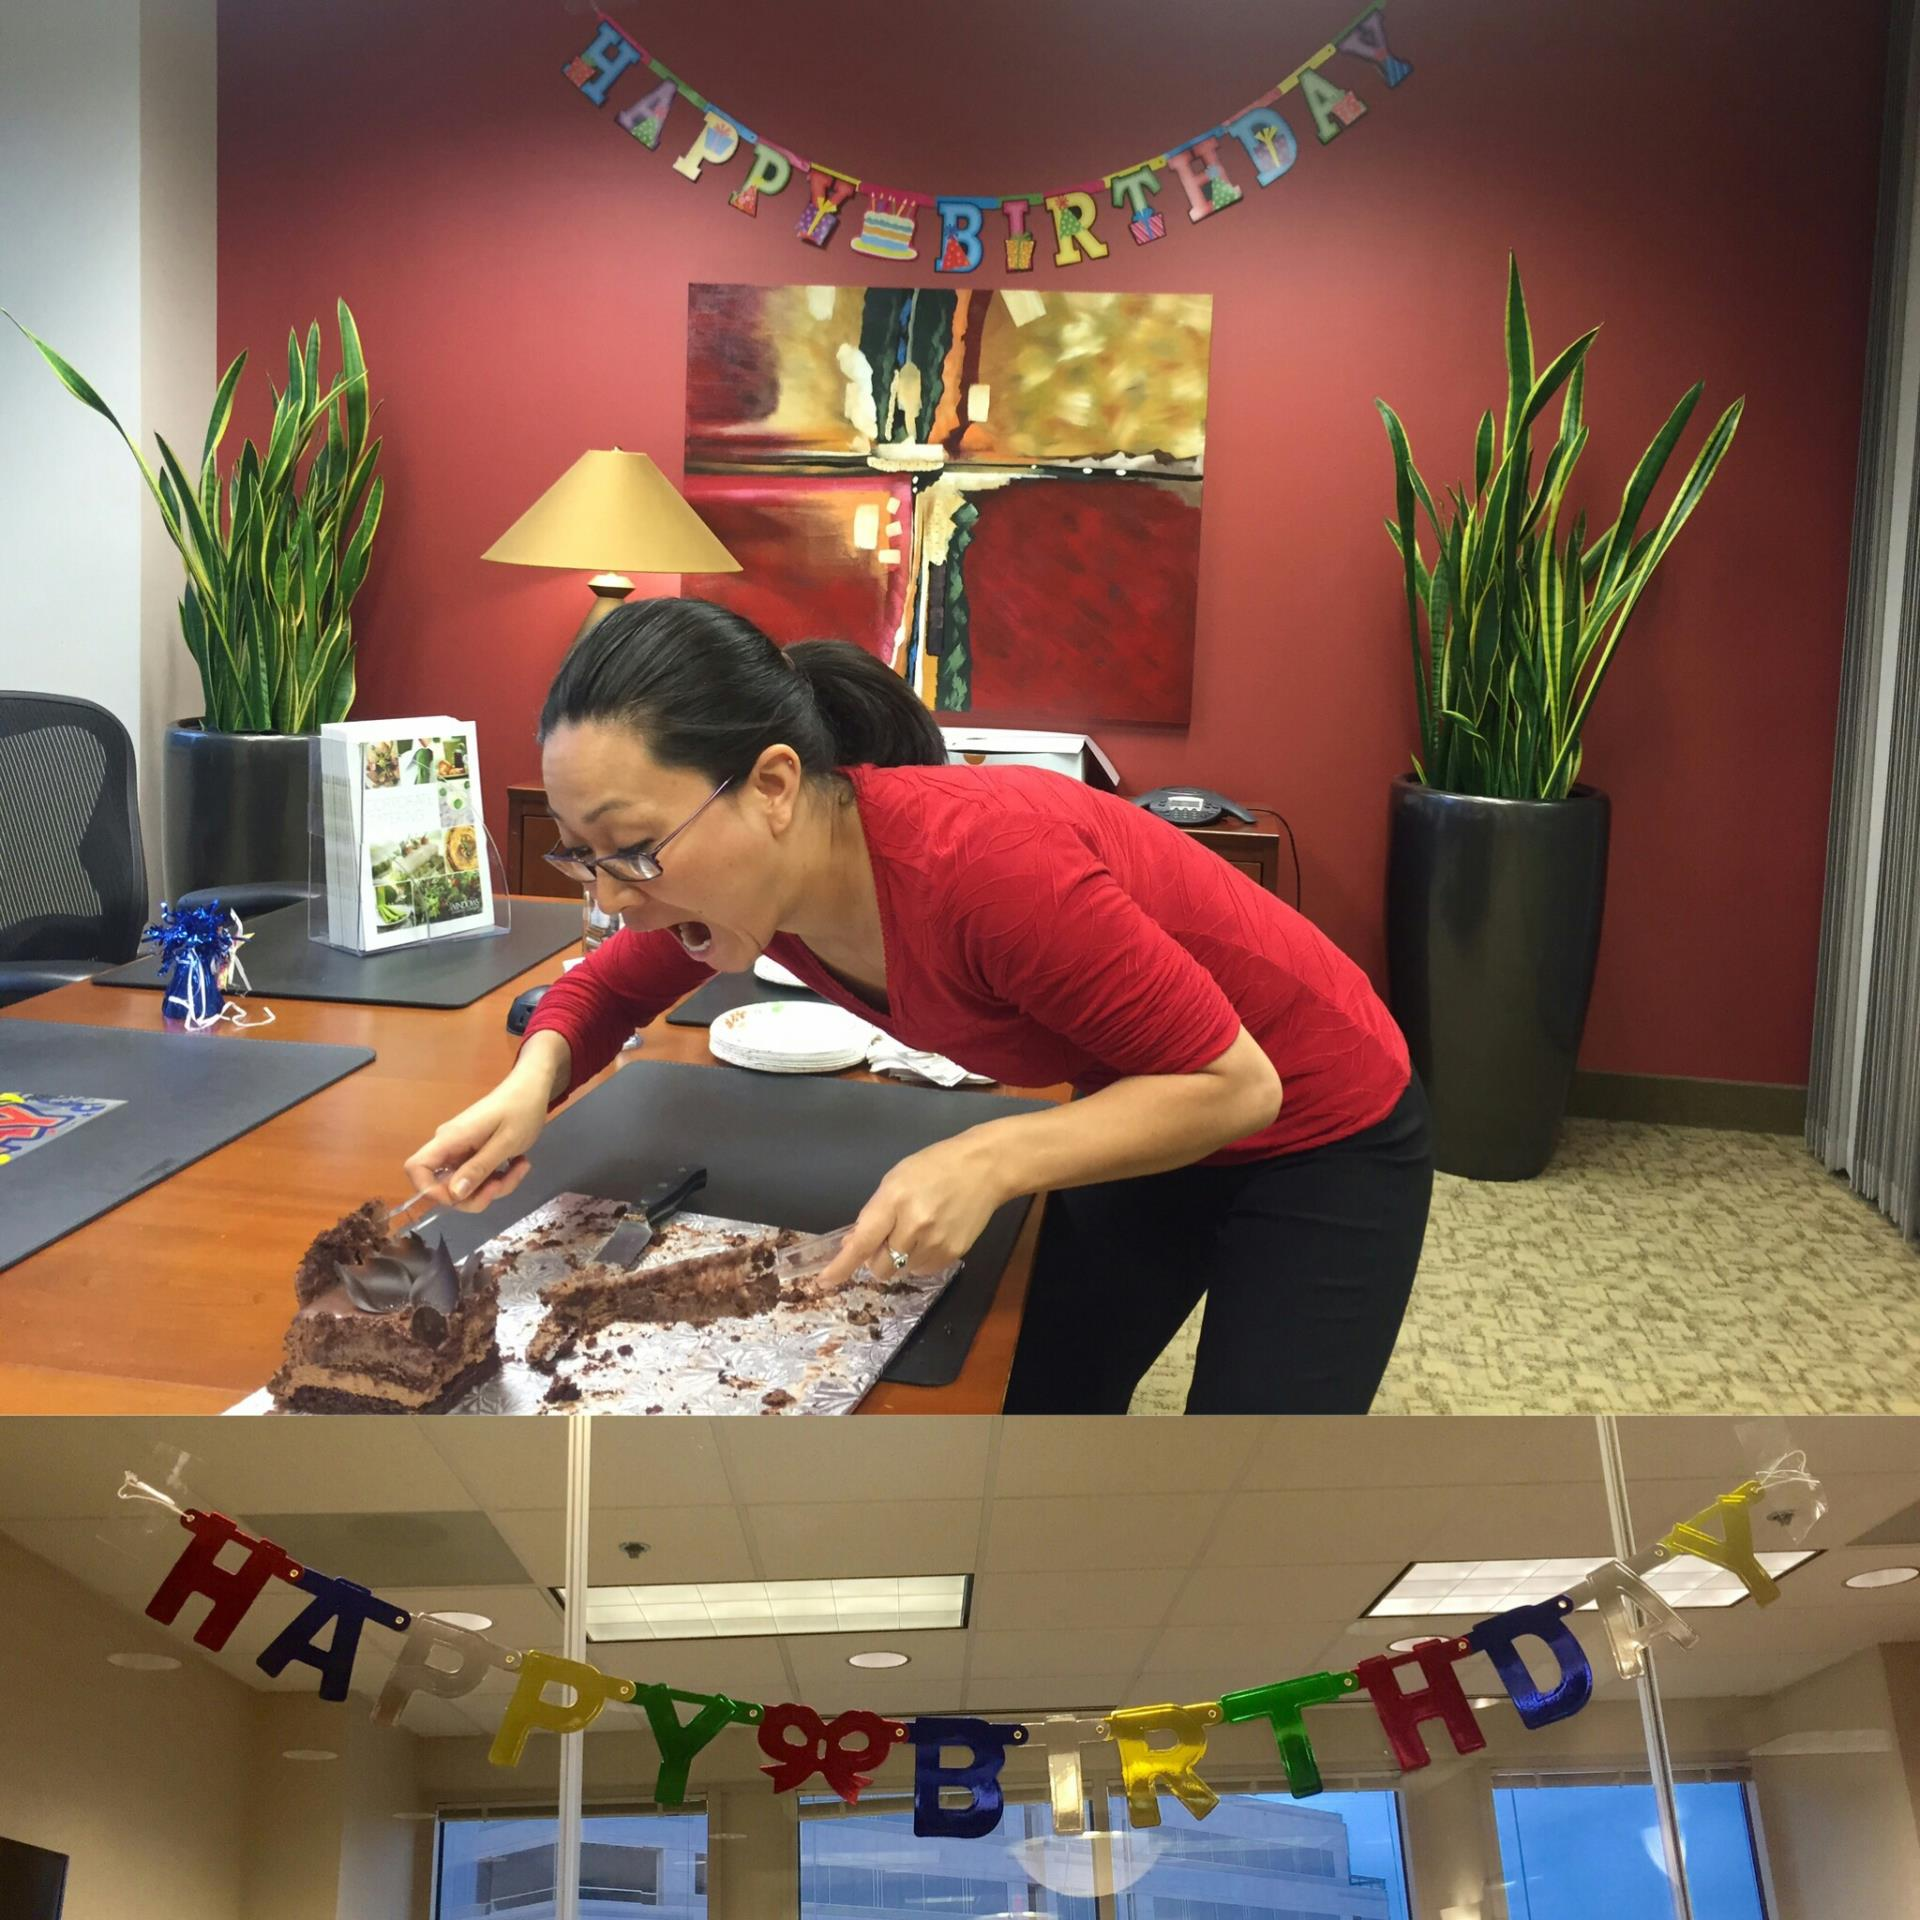 Reston, VA - Reston Metro Offices would like to thank Windows Catering for donating the delicious chocolate mouse cake to celebrate June birthdays! As you can see it was a hit!